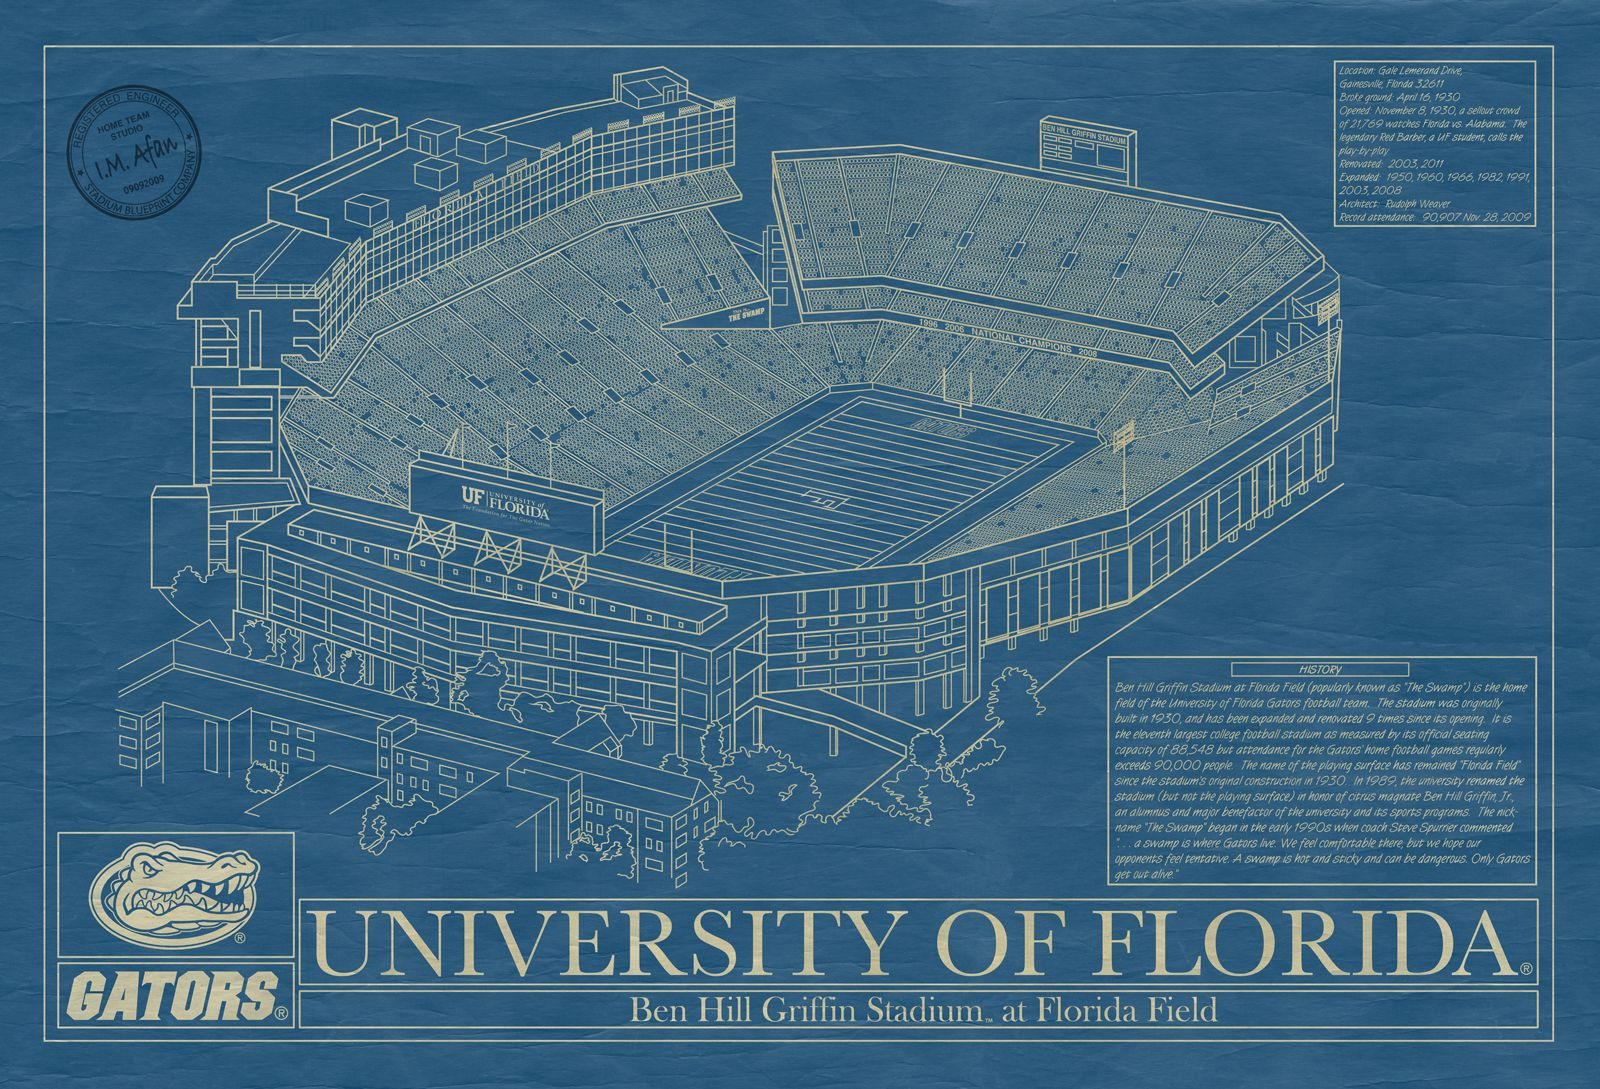 University of florida stadium as a unique blueprint style framed university of florida stadium as a unique blueprint style framed piece of art malvernweather Images